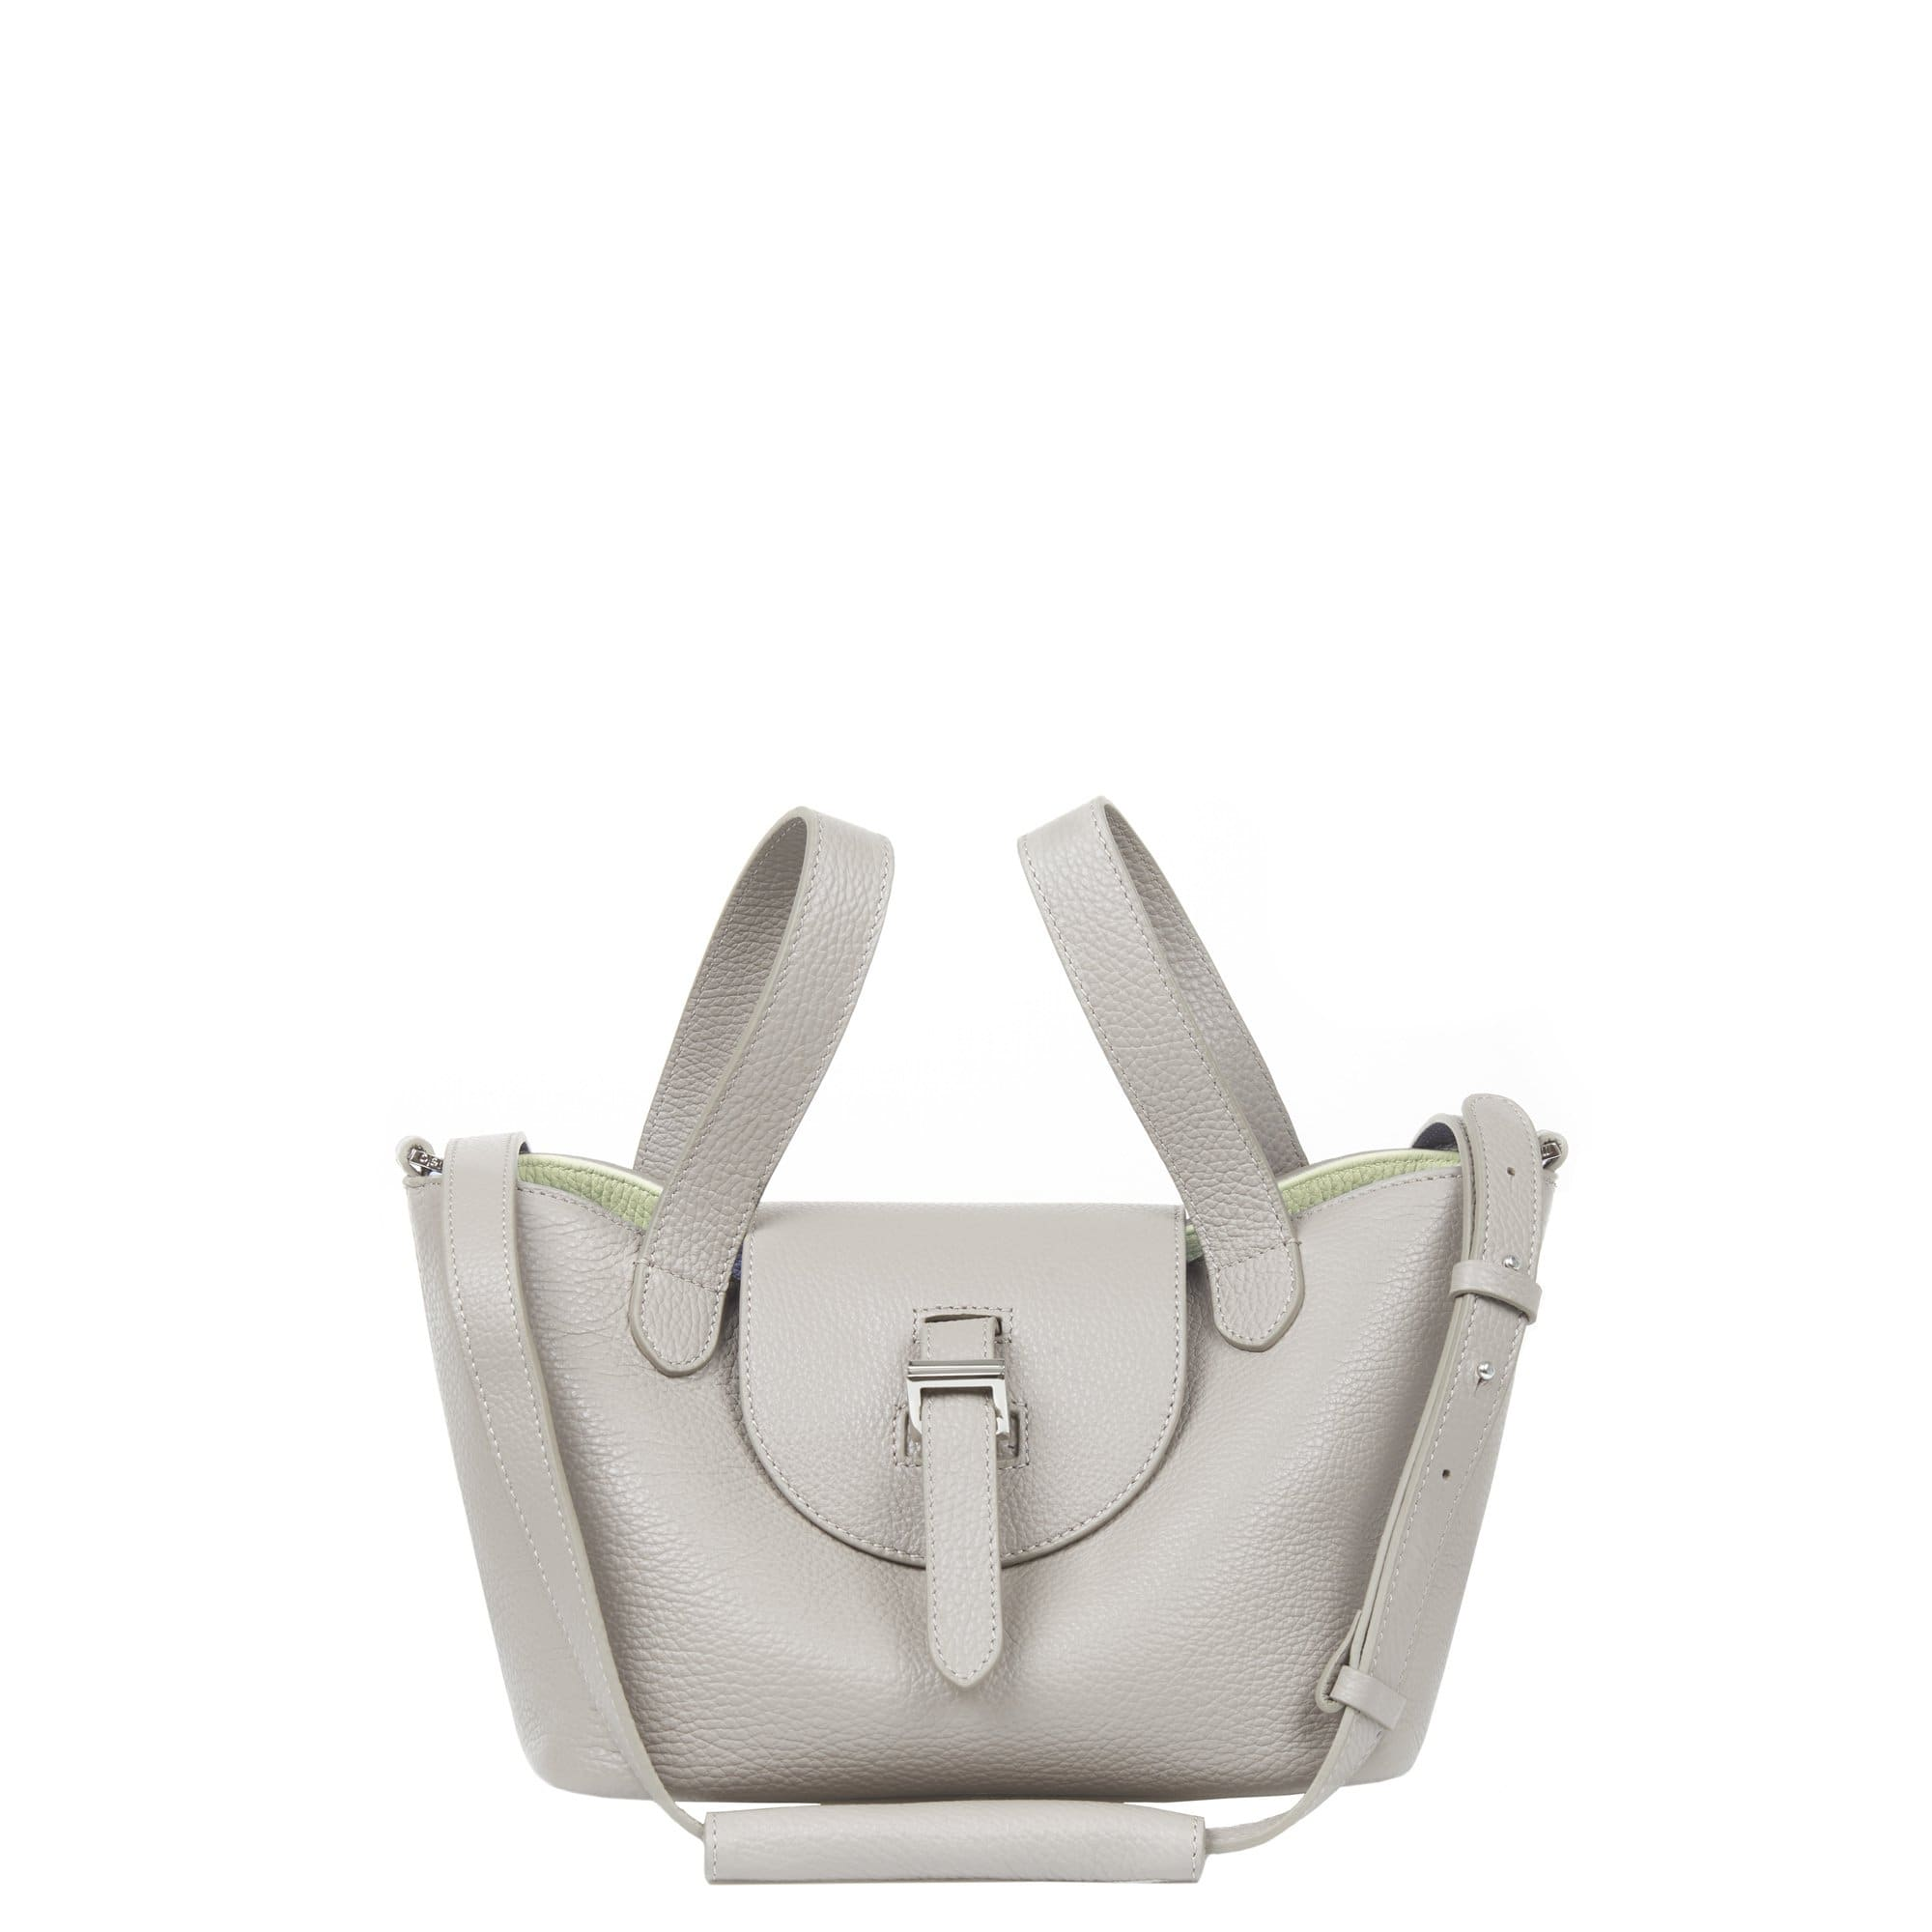 Meli Melo MELI MELO THELA MINI TAUPE AND APPLE CROSS BODY BAG FOR WOMEN